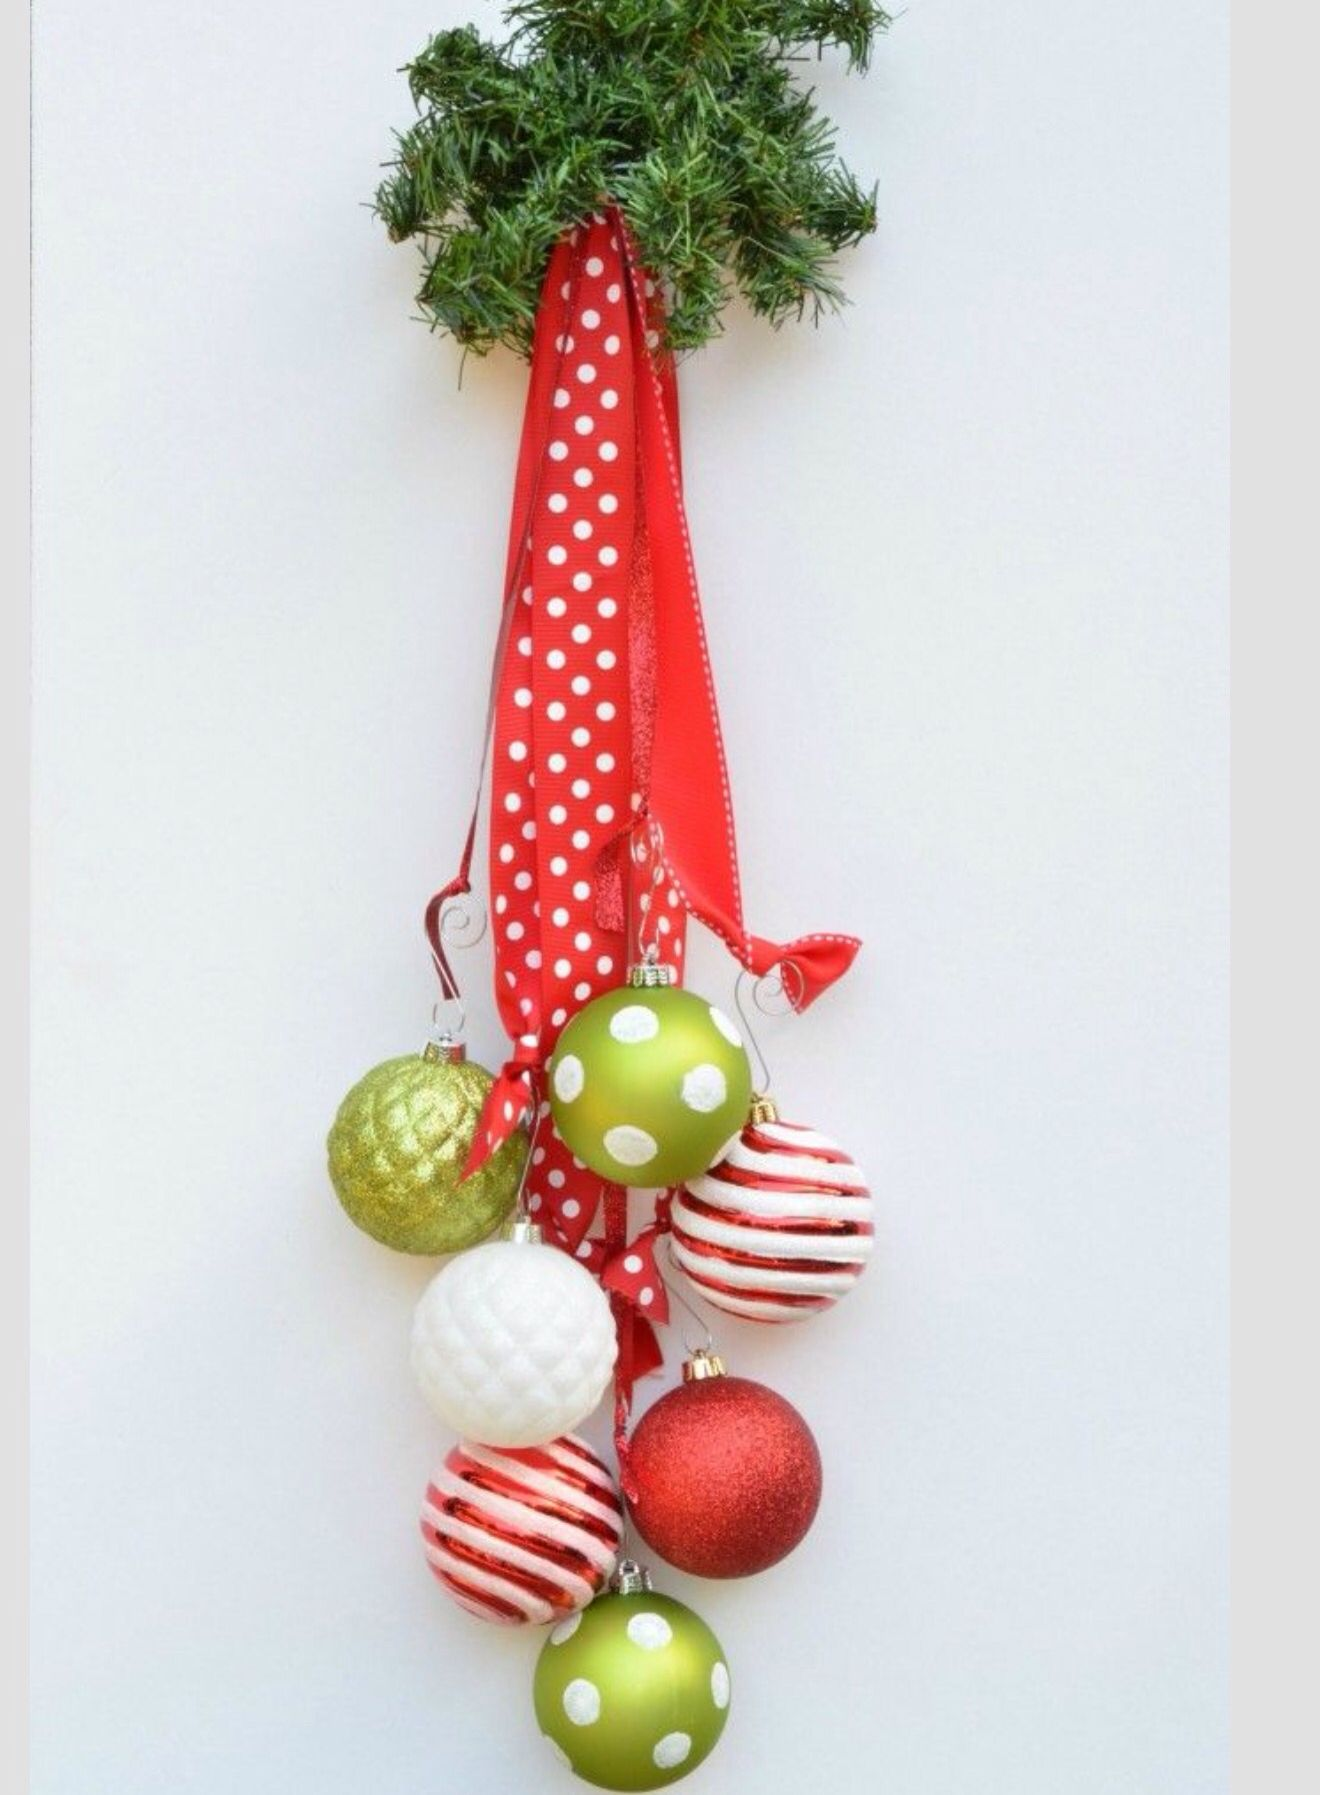 Diy Holiday Ornament Decor Using Inexpensive Plastic Ornament